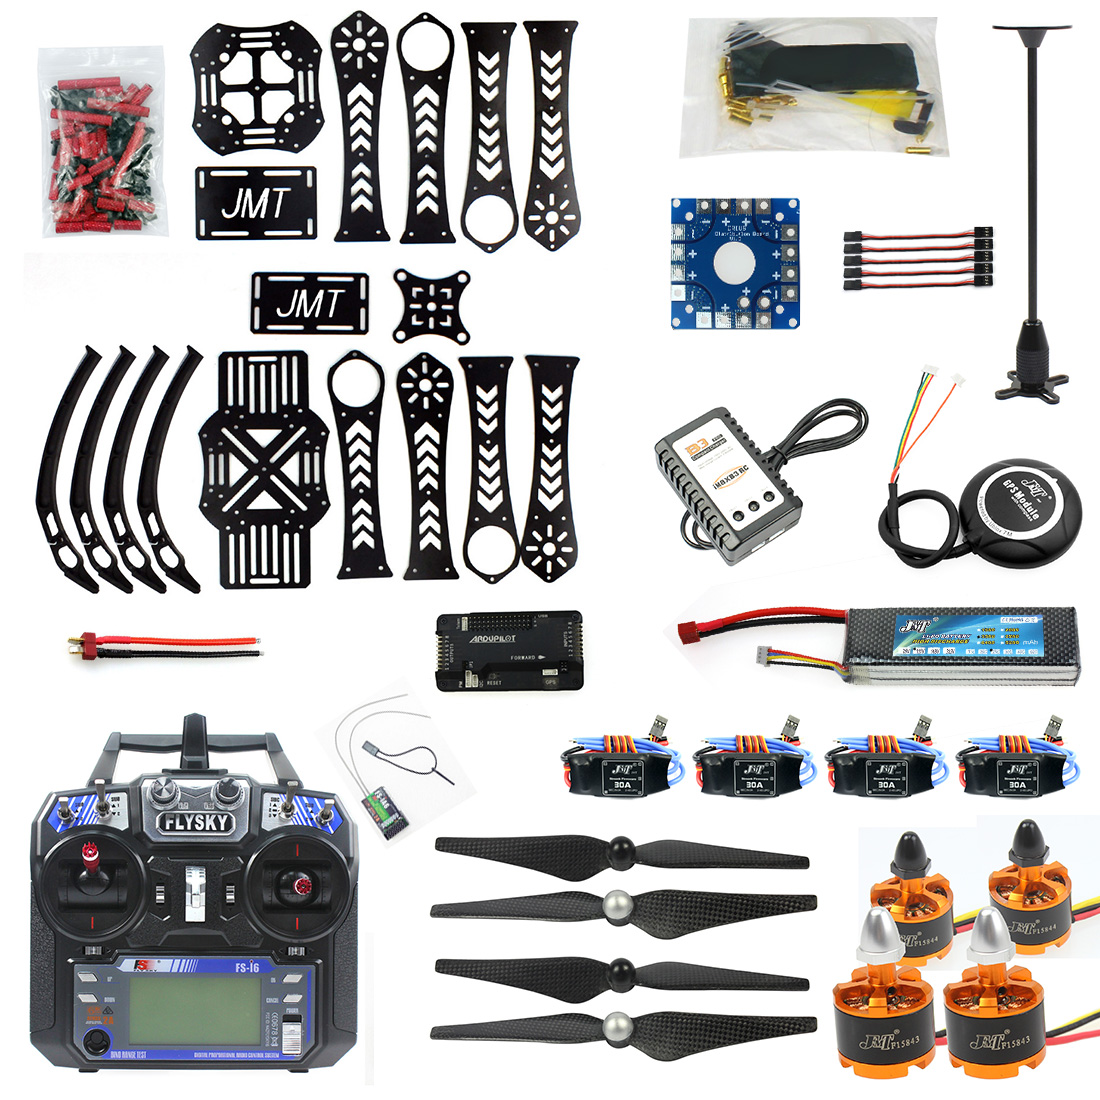 DIY X4M360L Frame Full Kit With GPS APM 2.8 Battery Charger RX TX RC Drone 4-axis Aircraft Remote Control Helicopter Quadcopter